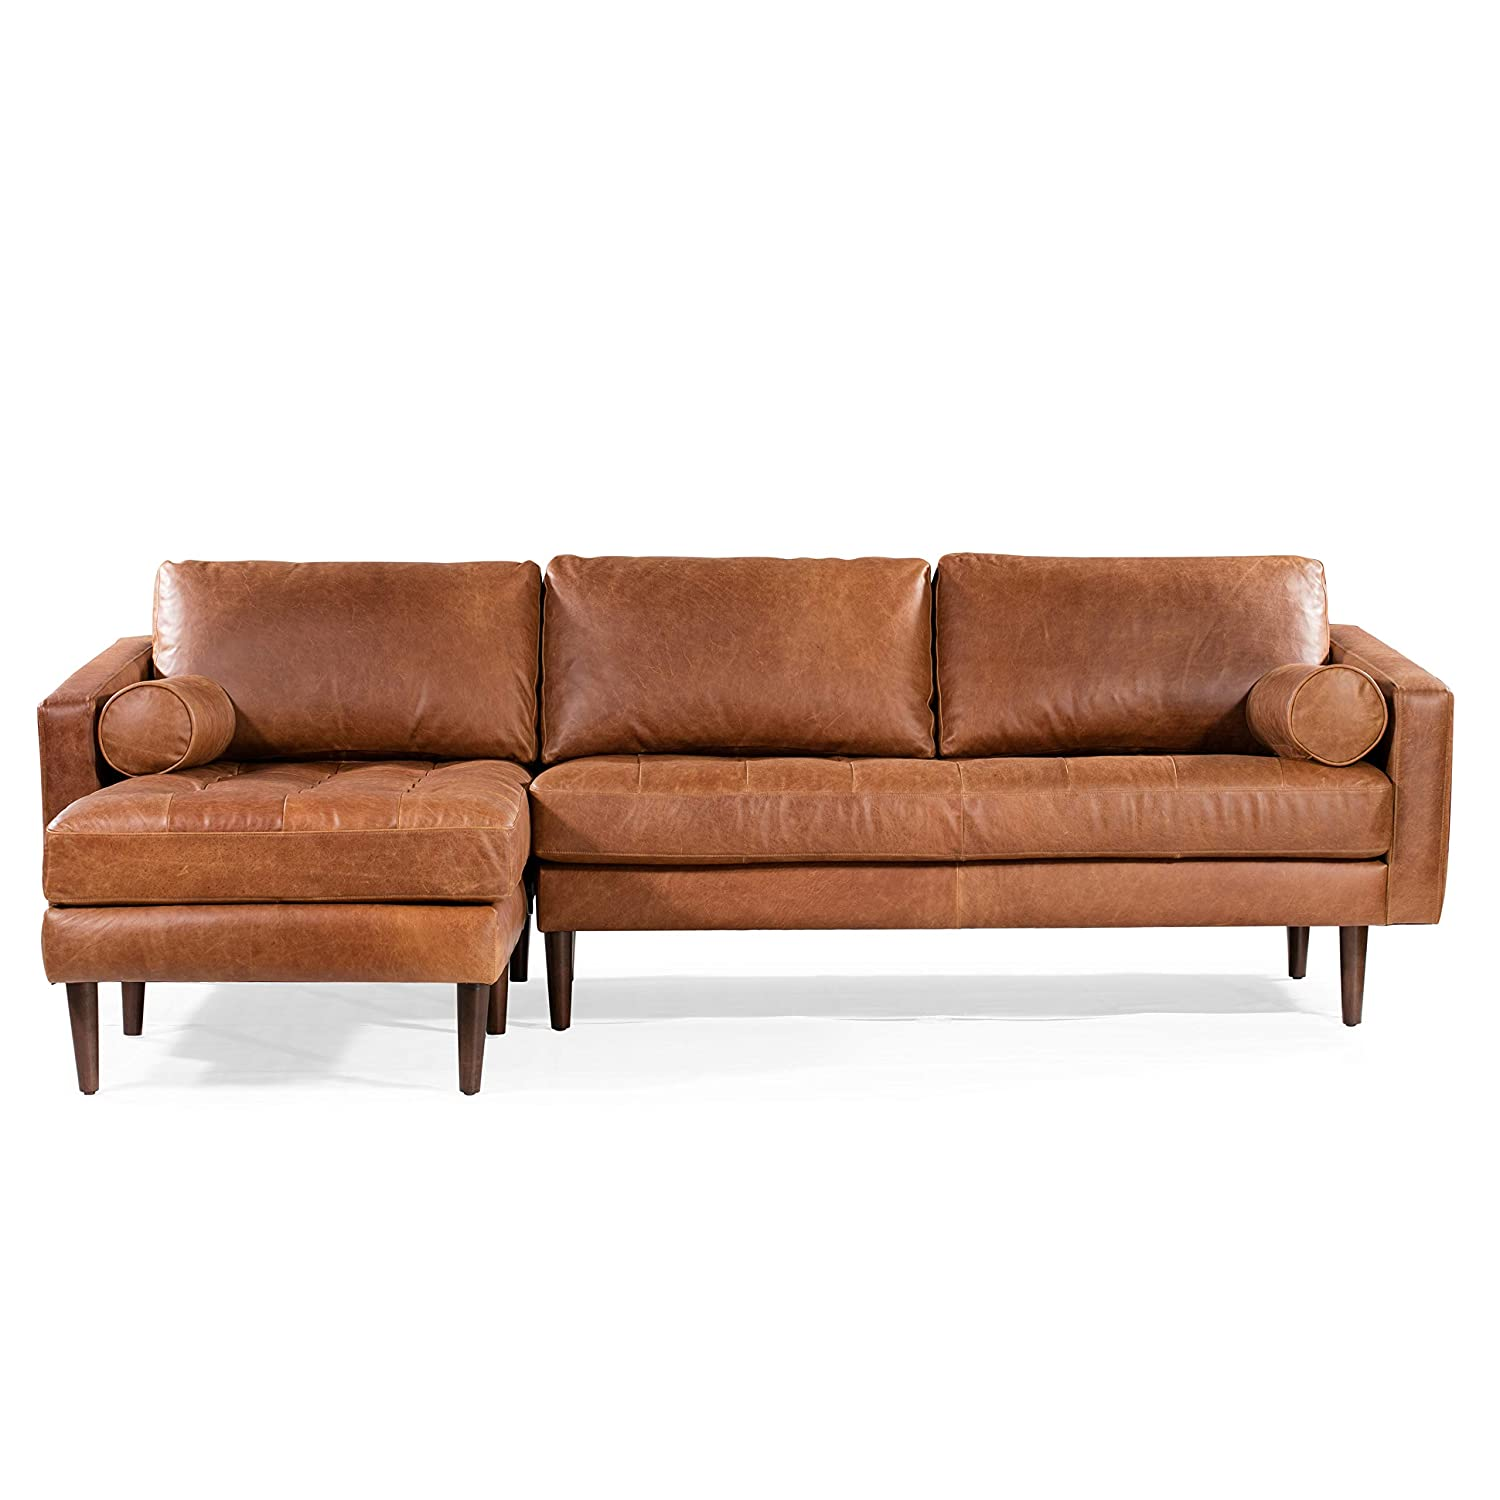 Pleasant Poly Bark Napa Left Sectional Leather Sofa In Cognac Tan Spiritservingveterans Wood Chair Design Ideas Spiritservingveteransorg